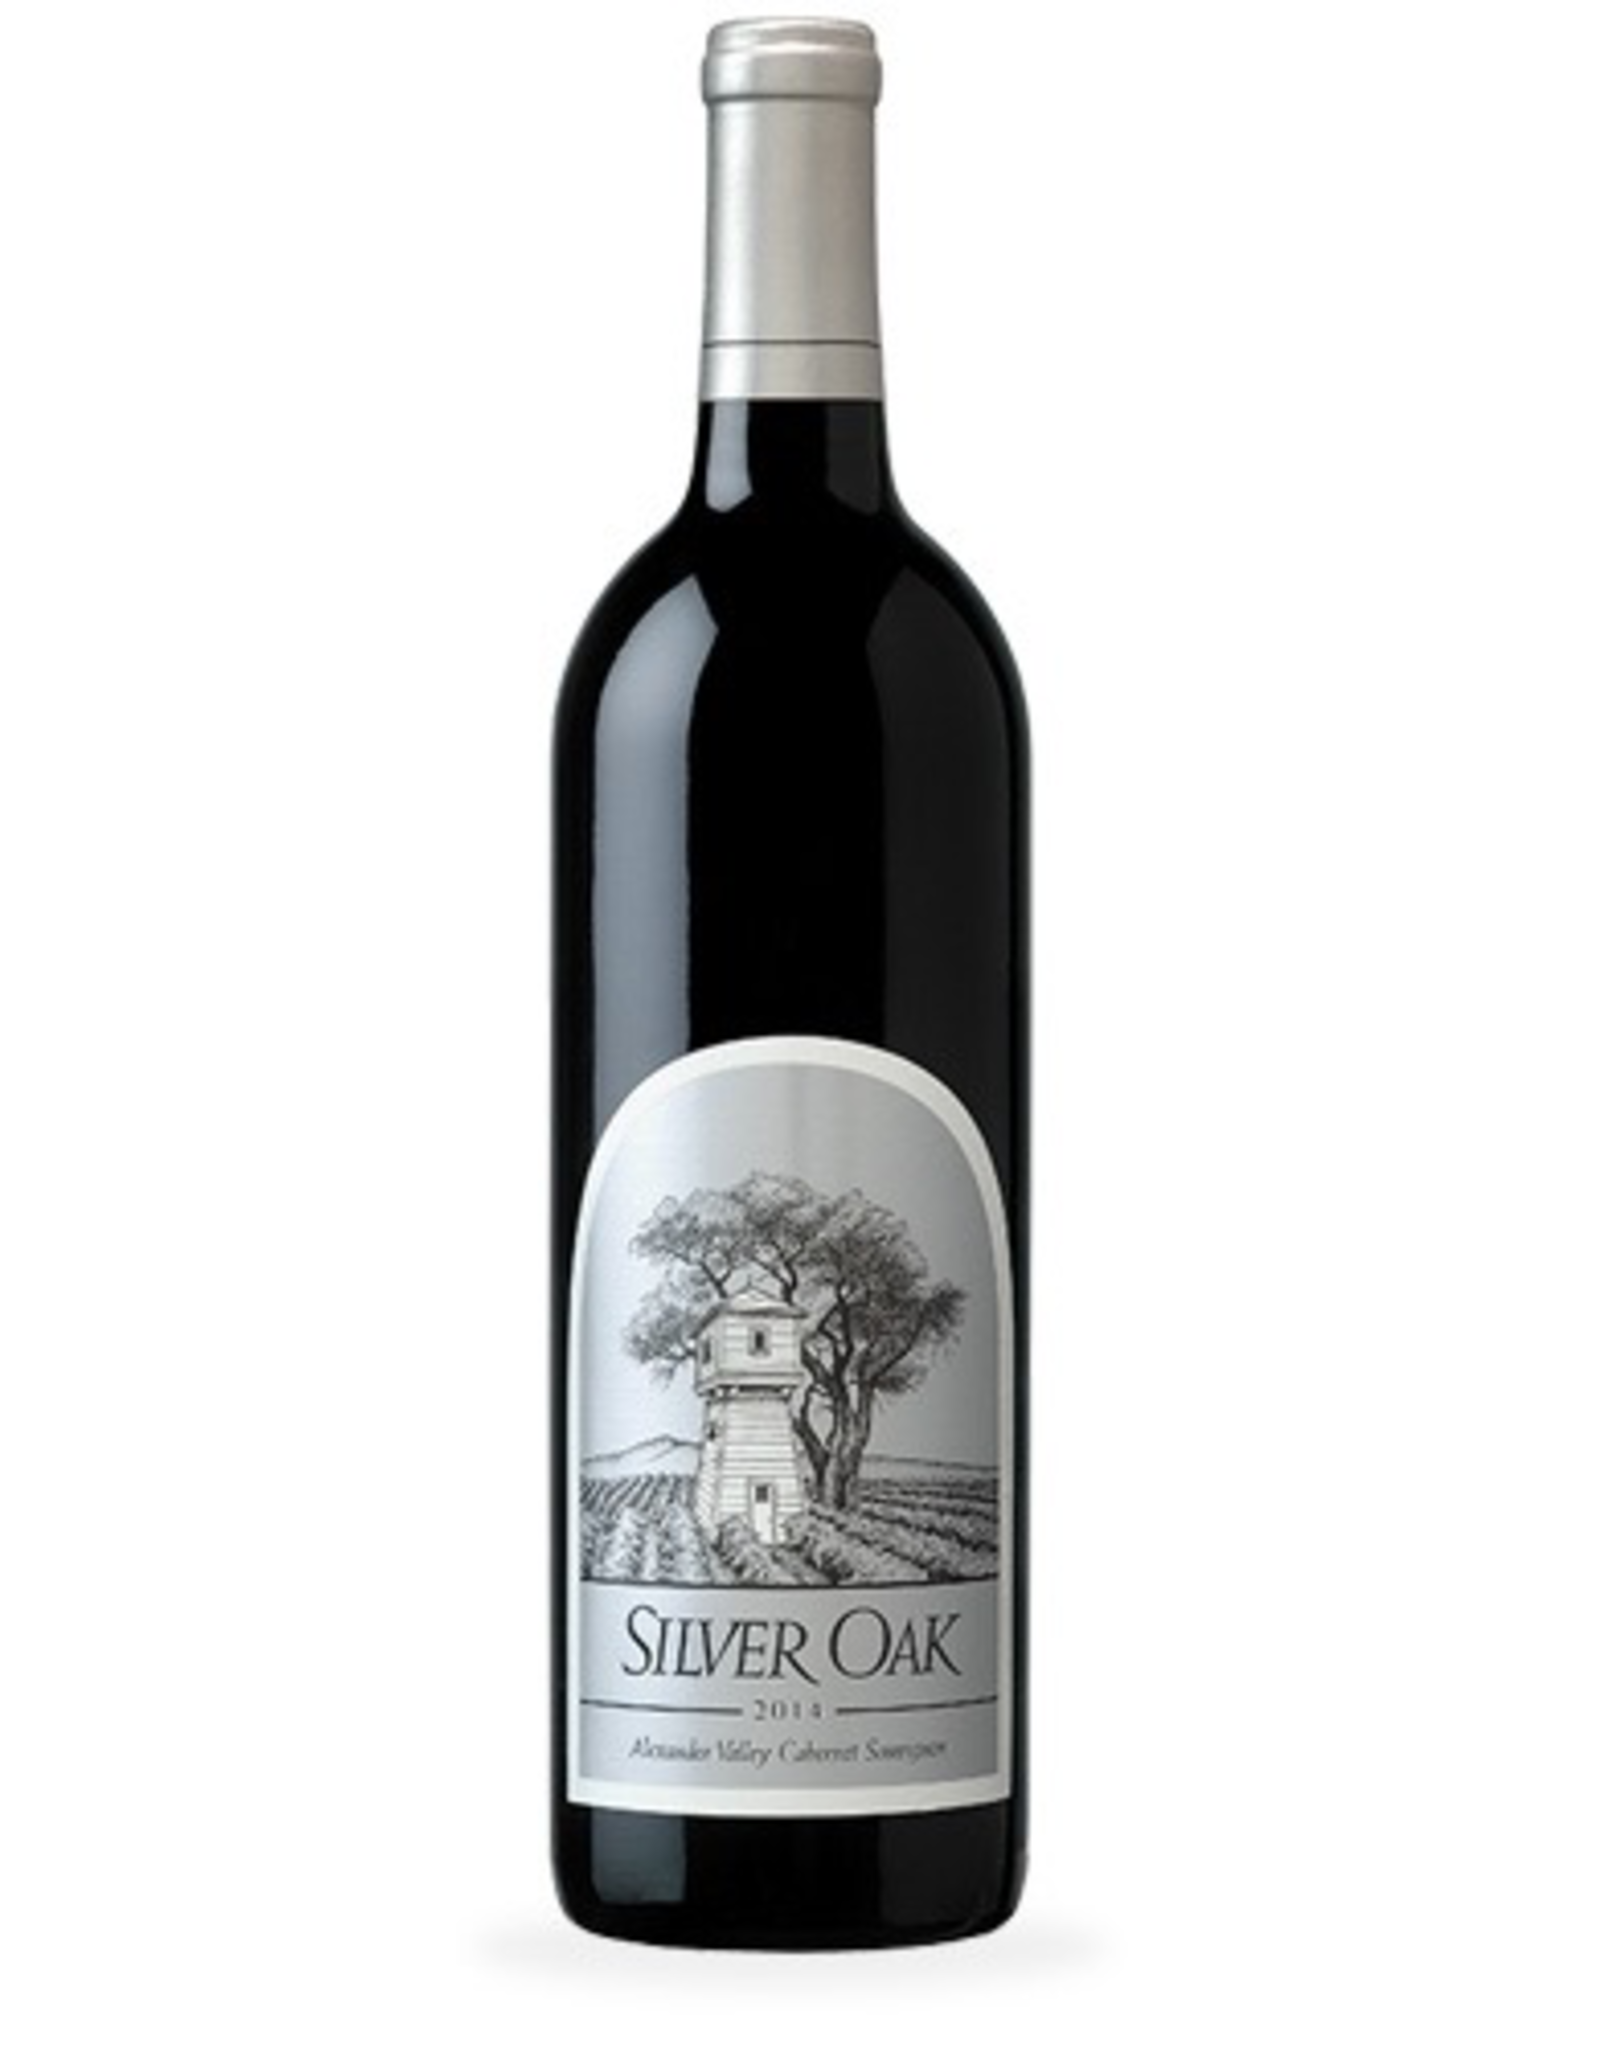 Red Wine 2016, Silver Oak, Cabernet Sauvignon, Alexander Valley, Sonoma County, California, 13.9% Alc, CTnr